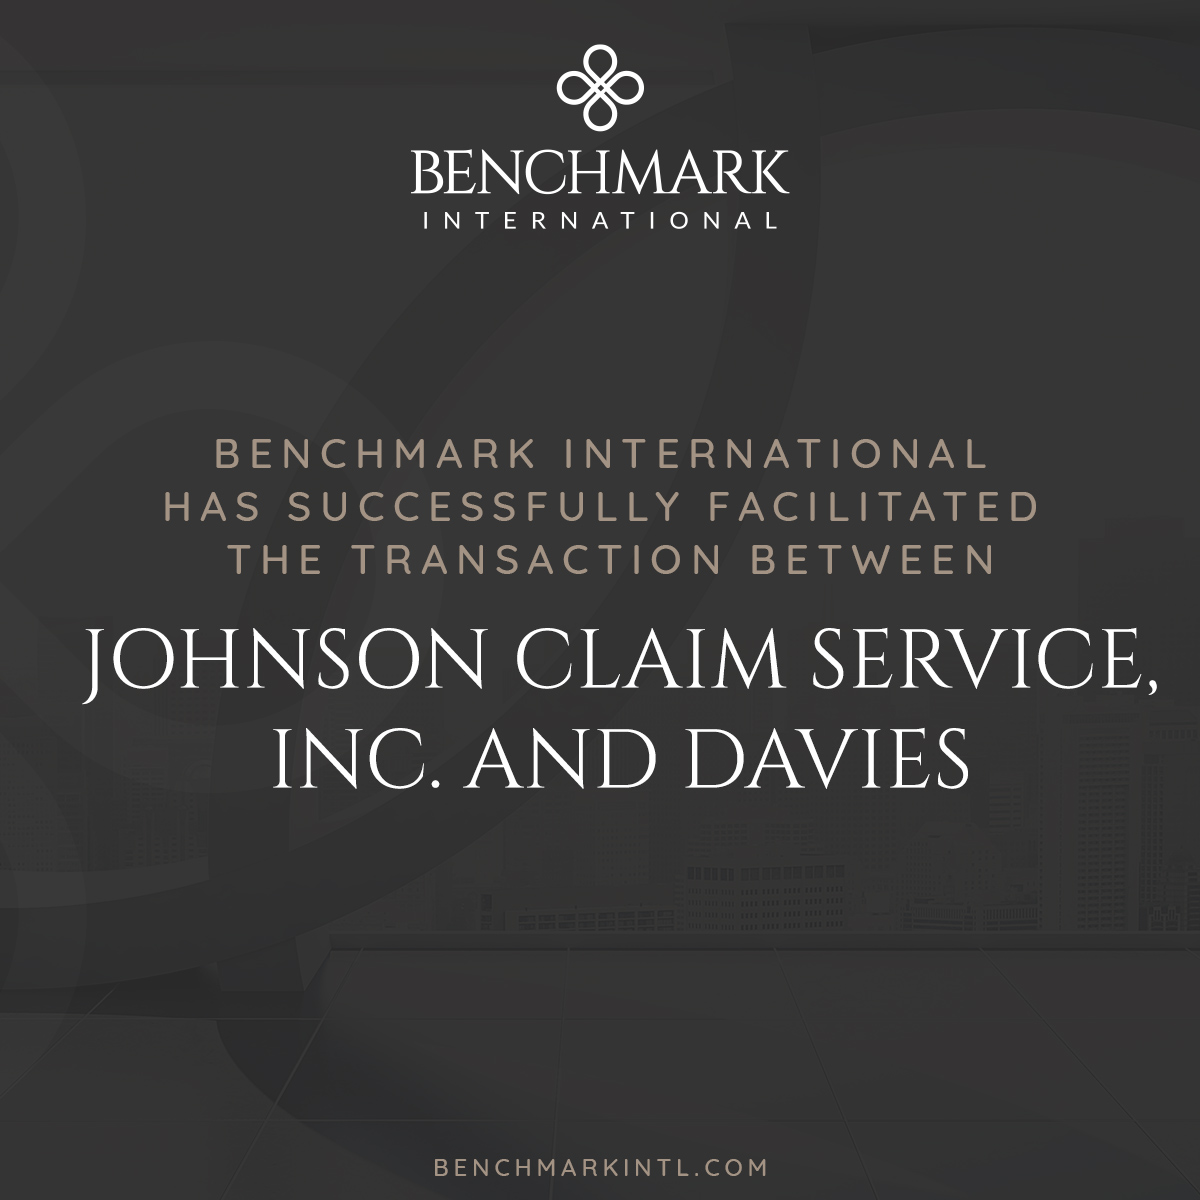 Johnson_Claim_Service_and_Davies_Social